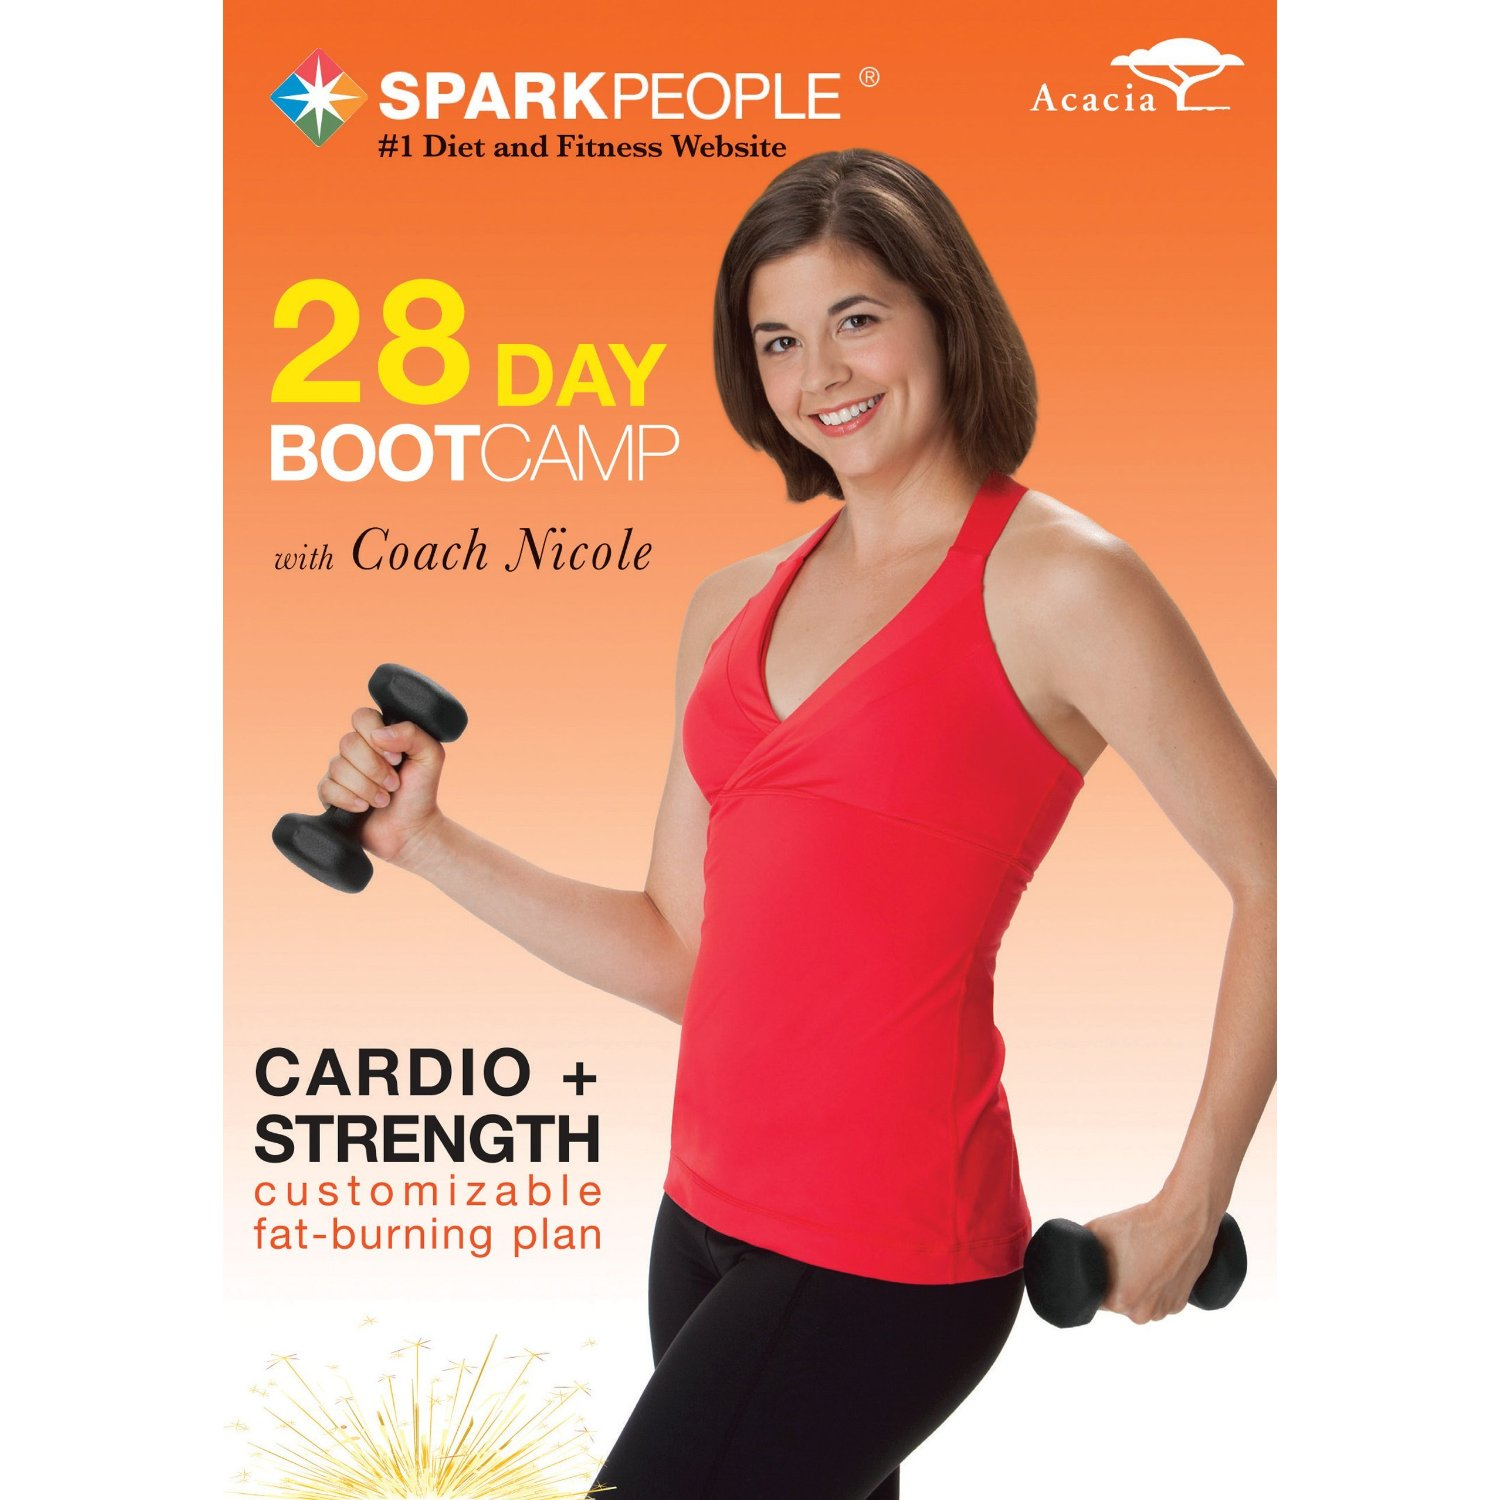 sparkpeople-28-day-bootcamp-nicole-spry.jpg